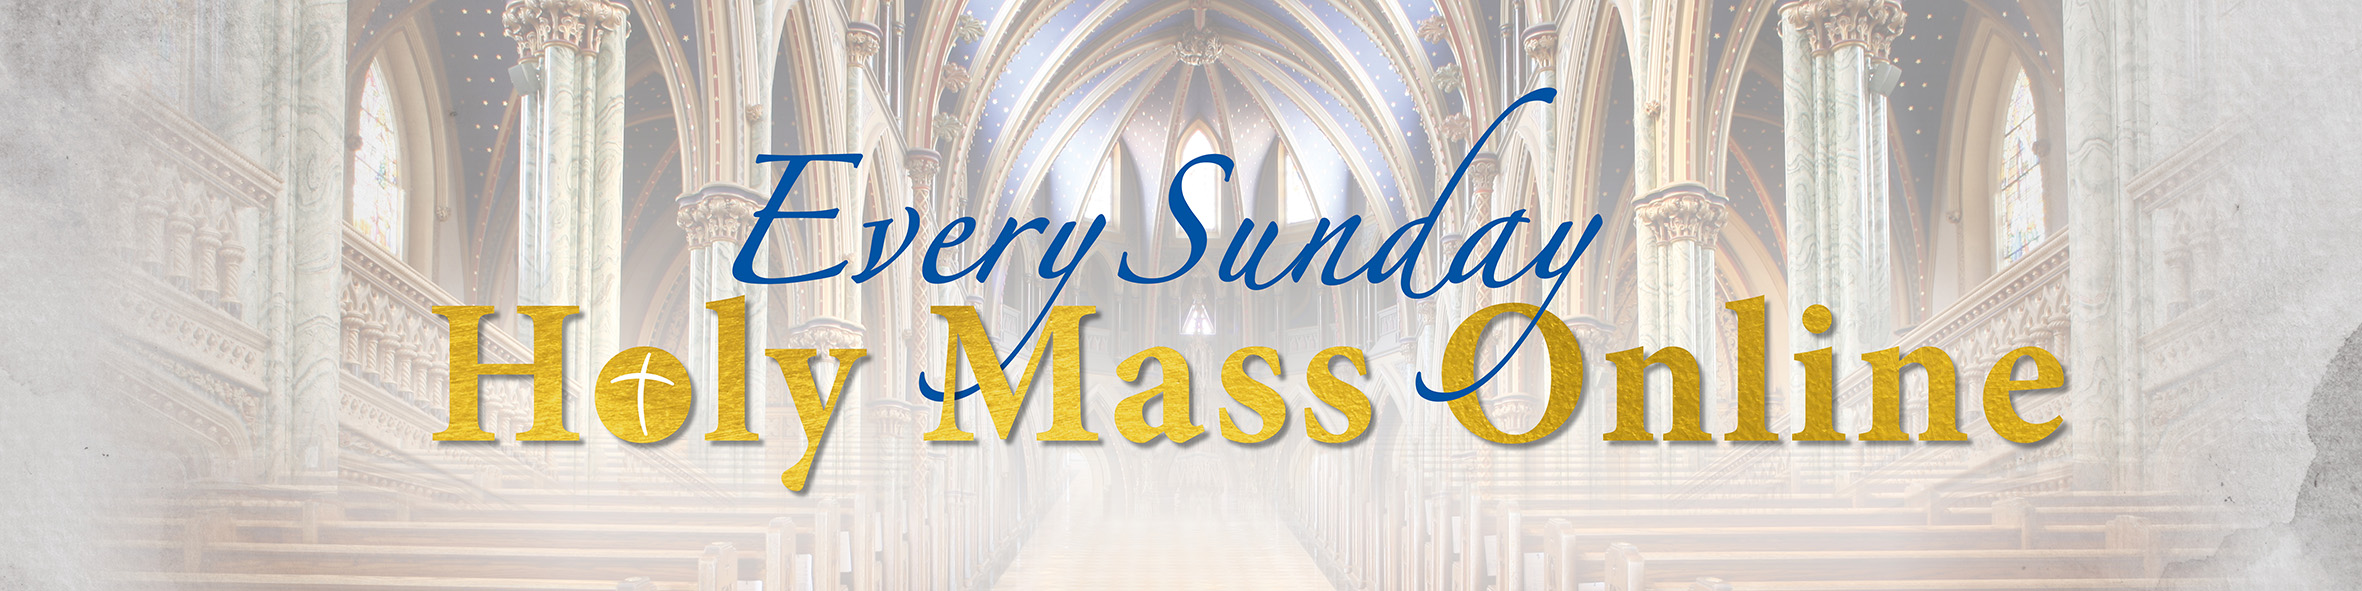 Redemptorist Publications Online Mass